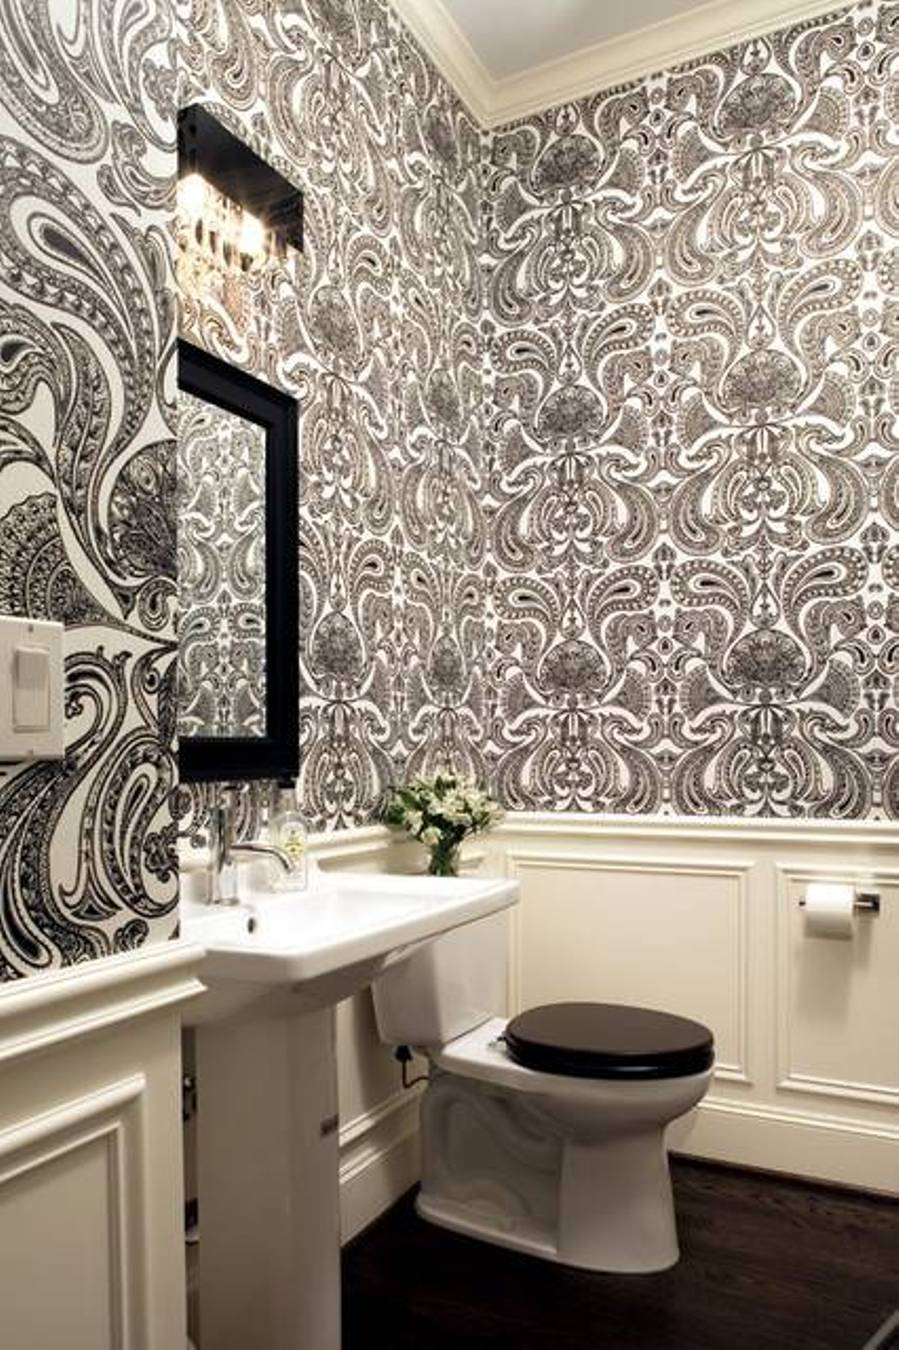 wainscoting-and-wallpaper-bathroom-bathroom-with-wallpaper-and-wainscoting-and-pedestal-sink-and-mirror-and-padded-black-elongated-toilet-seat